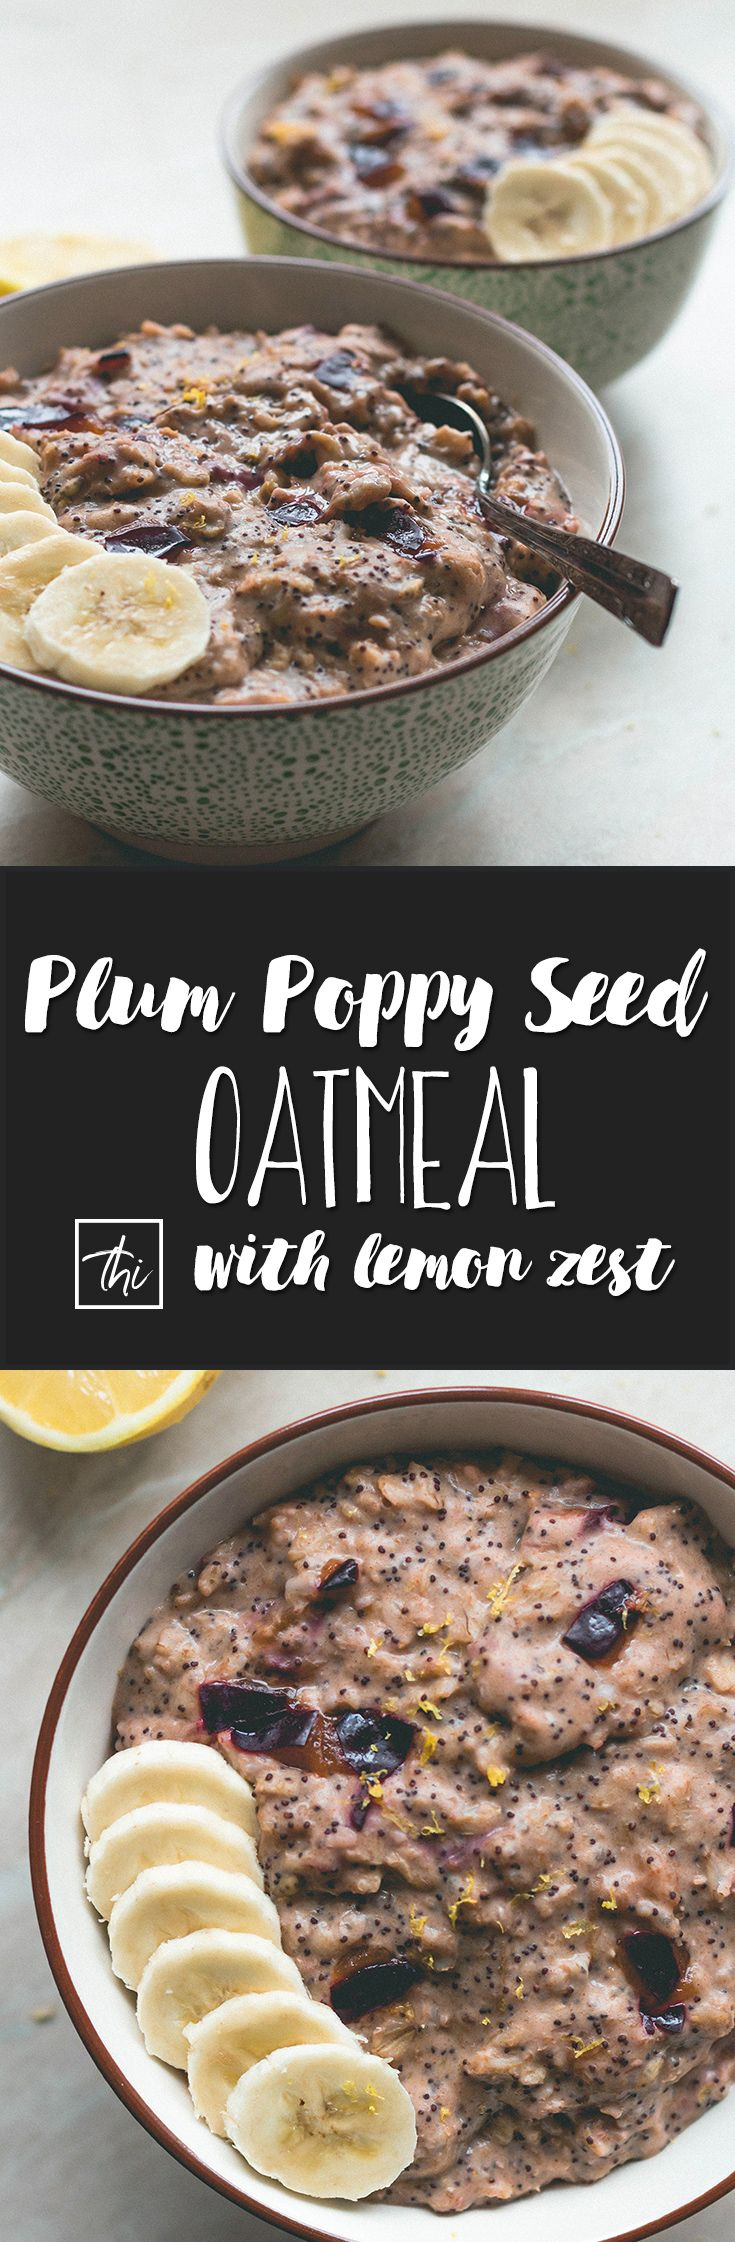 Plum Poppy Seed Oatmeal (vegan, gluten-free) - this oatmeal is really easy to make and it's the perfect healthy breakfast to fuel you through the day! Plums, oats, almond milk, poppy seeds, and a few spices. YUM! | thehealthfulideas.com (summer food breakfast)